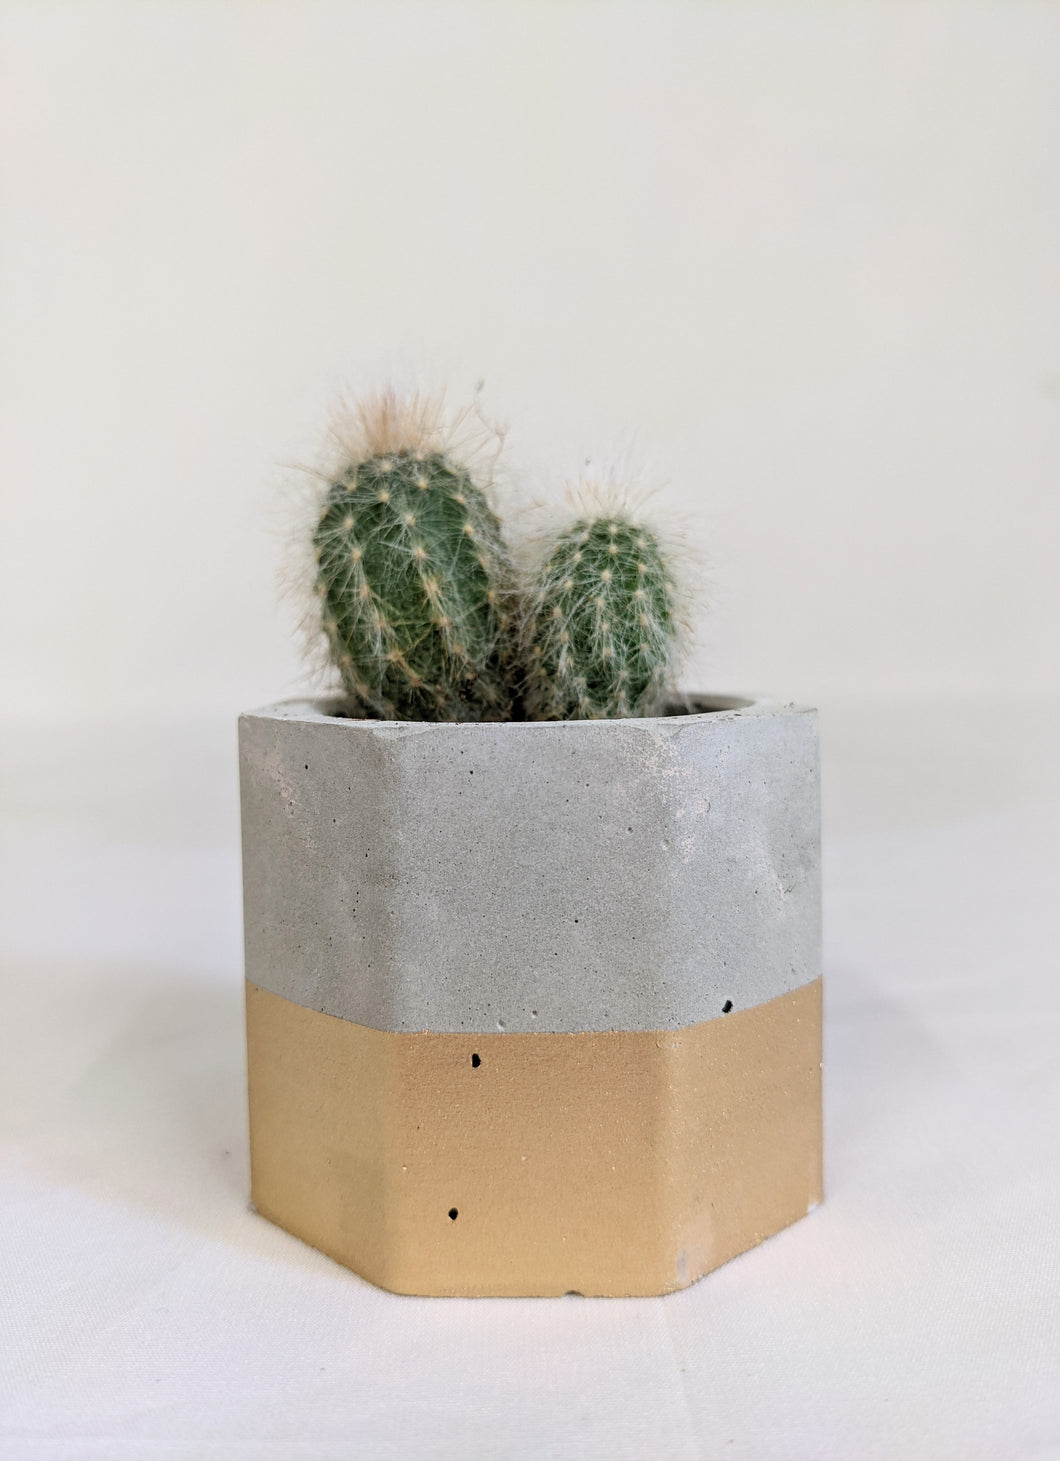 Concrete octagon by Kaylyn - gold dip - 4cm